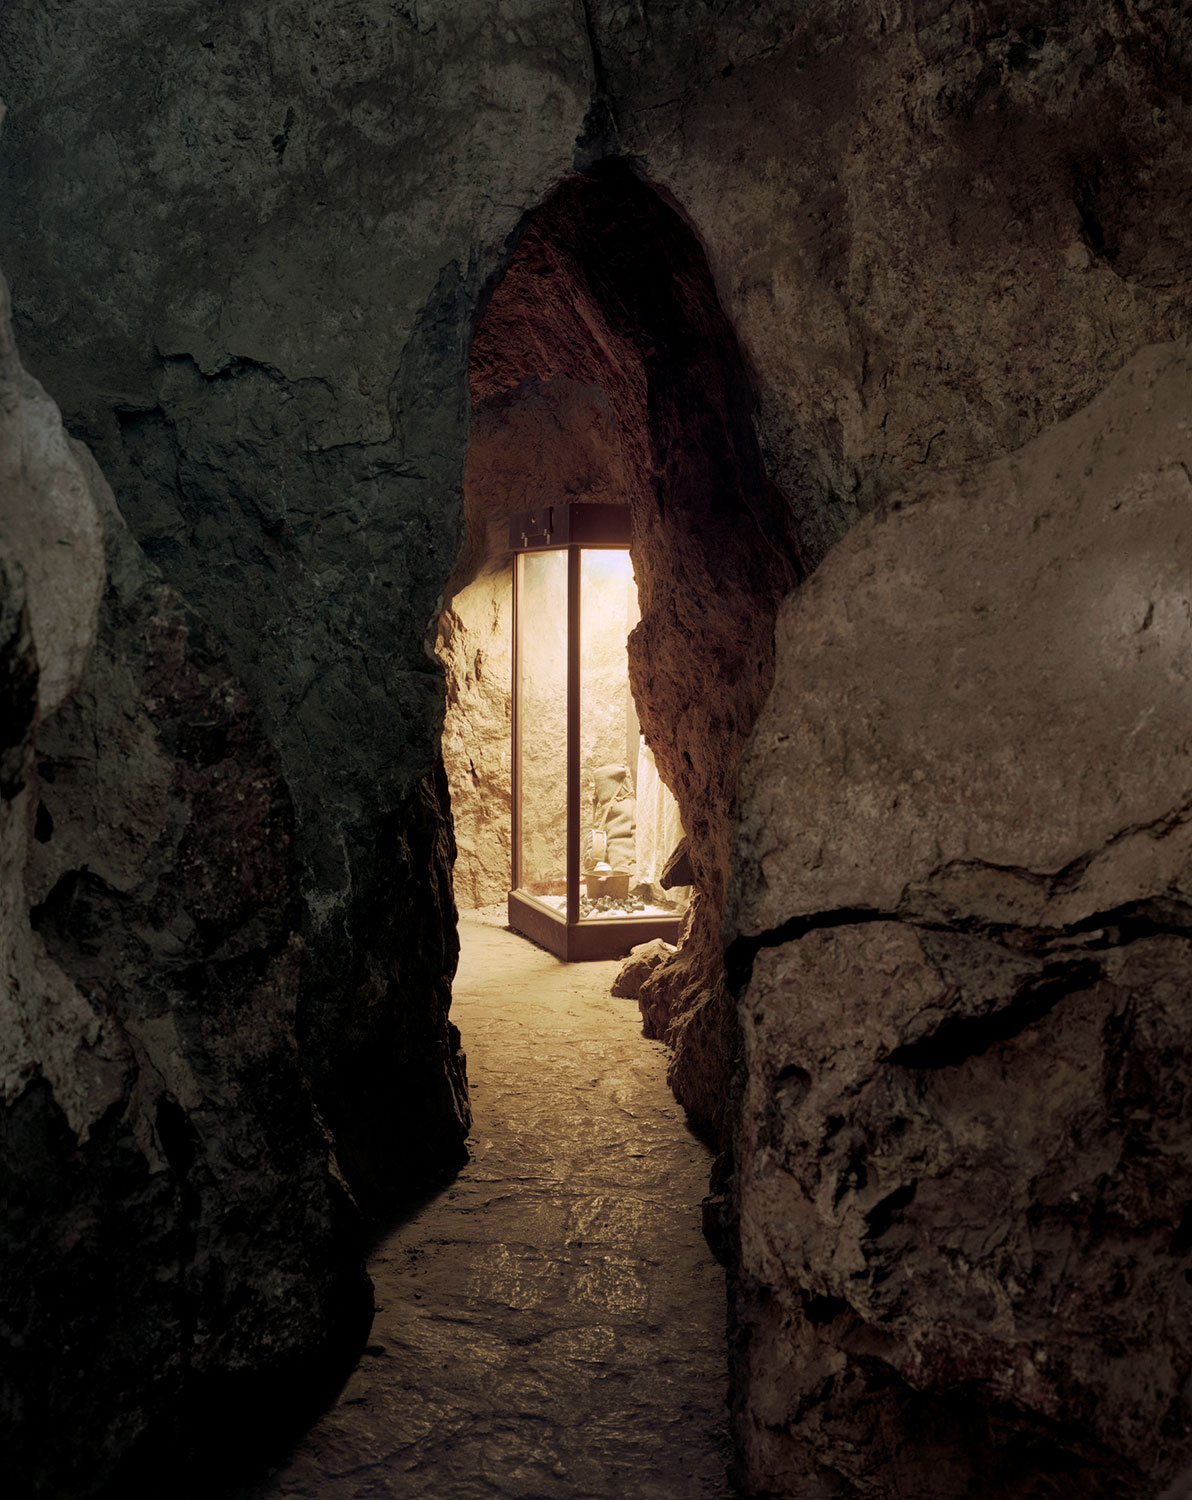 Austin Irving, Colossal Cave Display Case, Arizona, 2013.